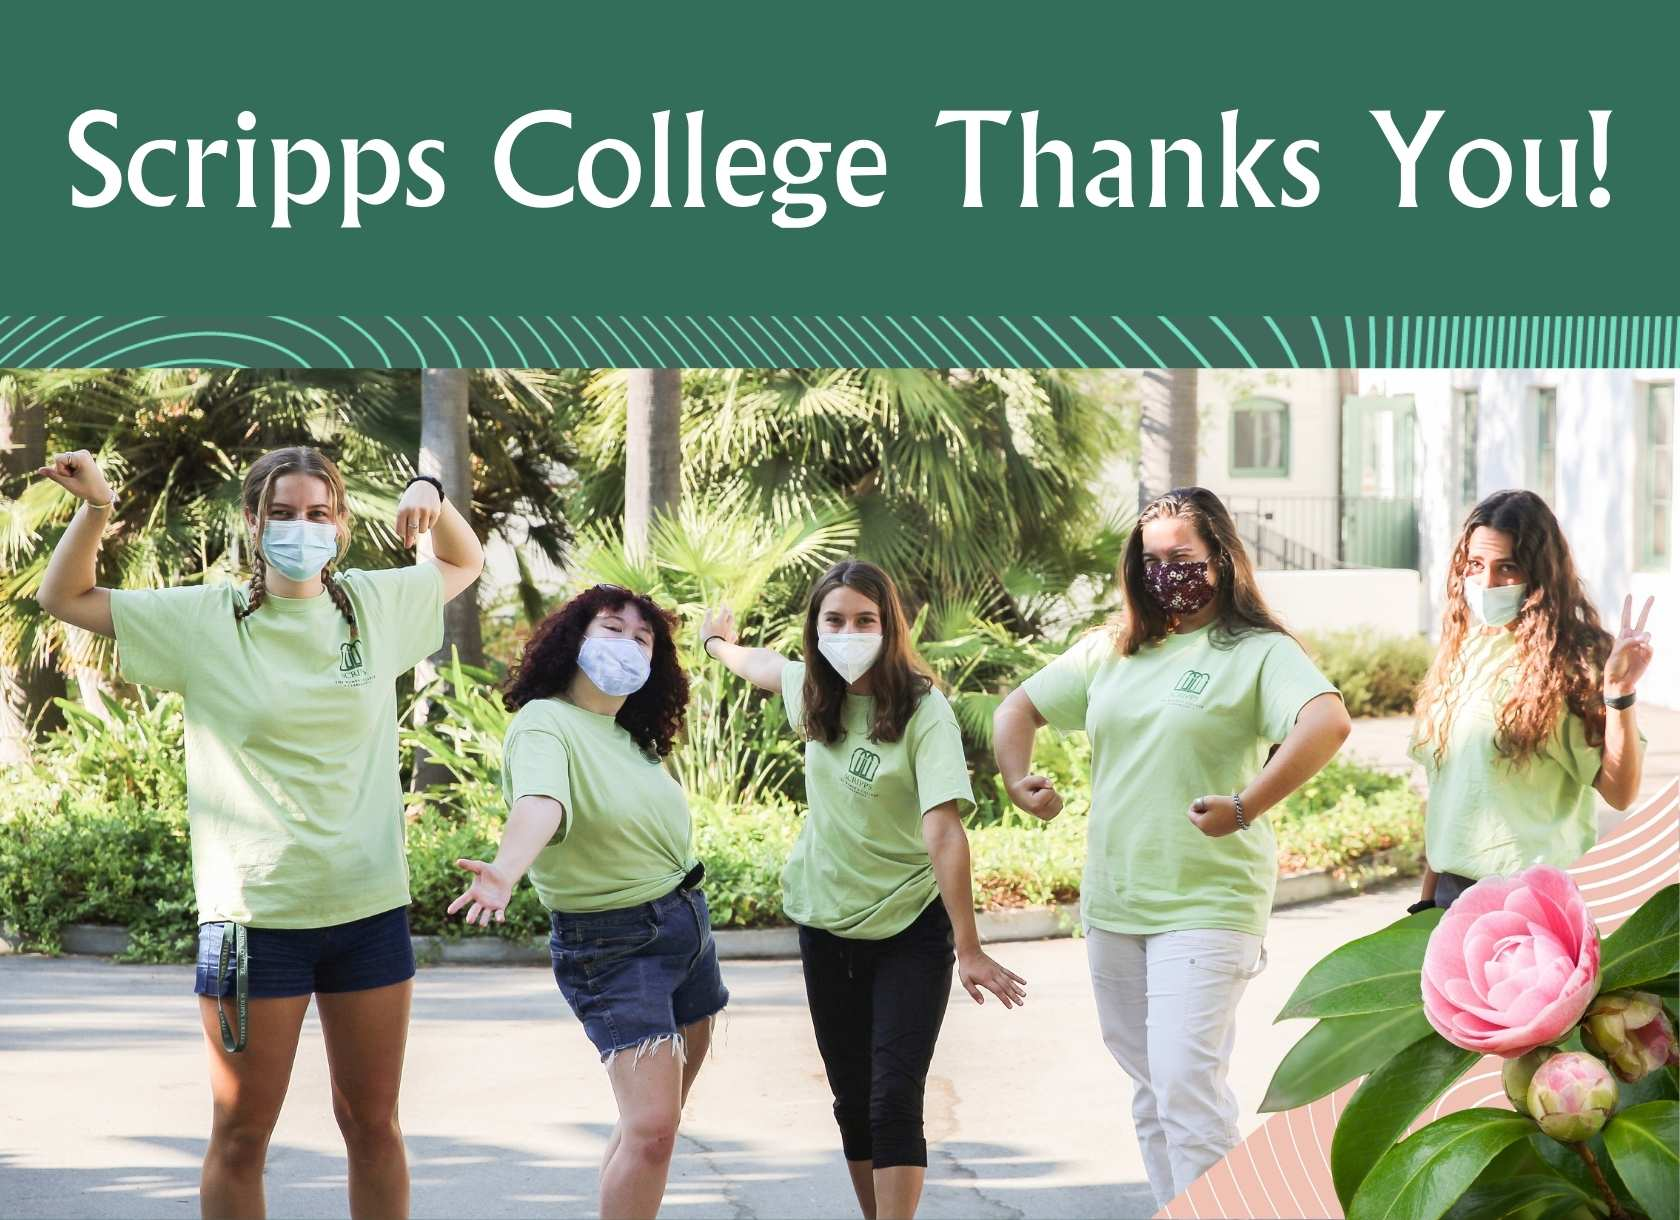 Donors Aid Scripps Students with Highest Level of Giving Since 2018